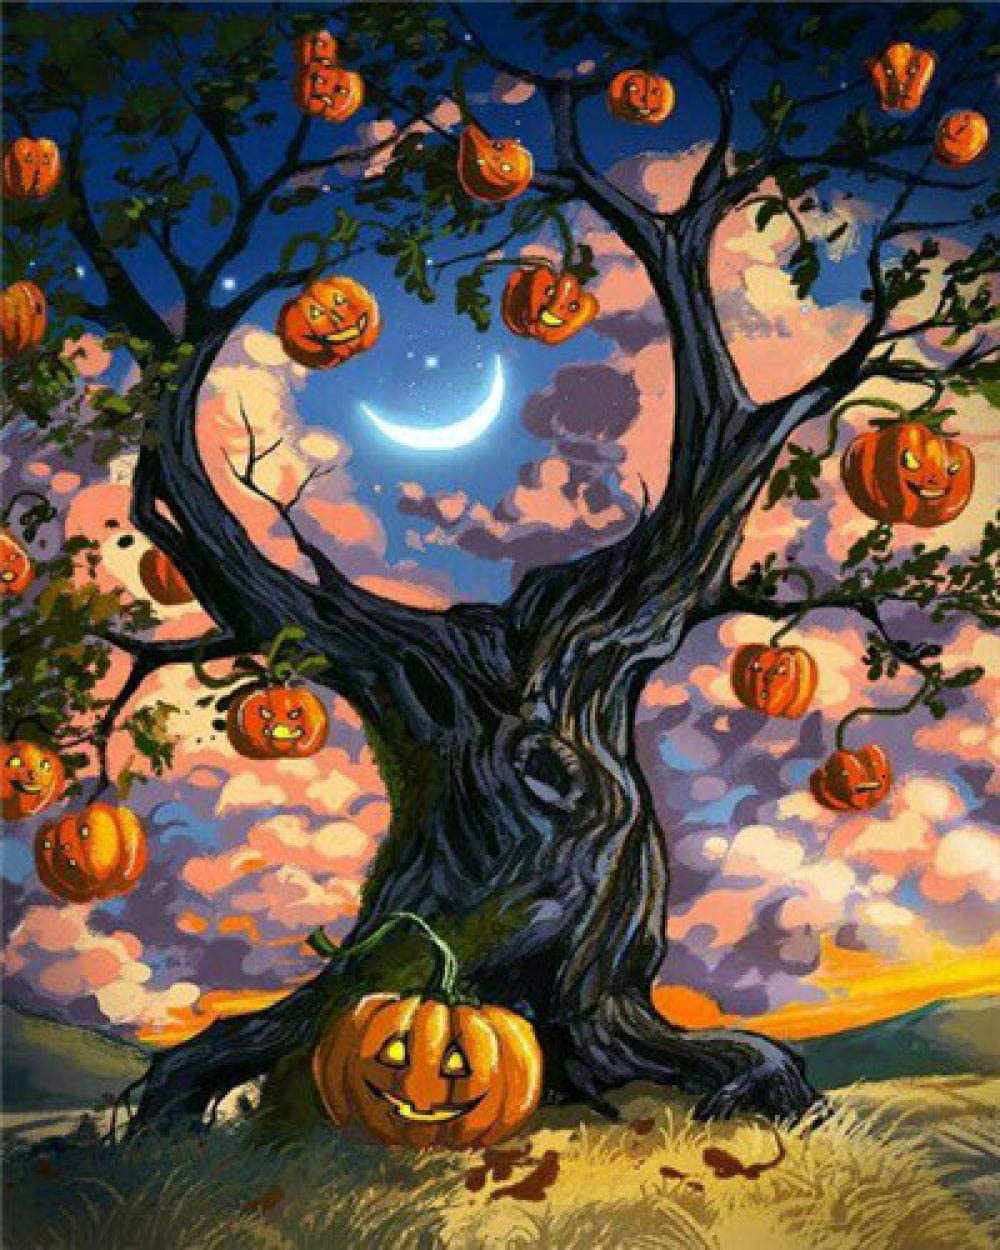 HRKDHBS Be super welcome DIY Oil Paint by Number Kit Halloween Max 88% OFF Painting